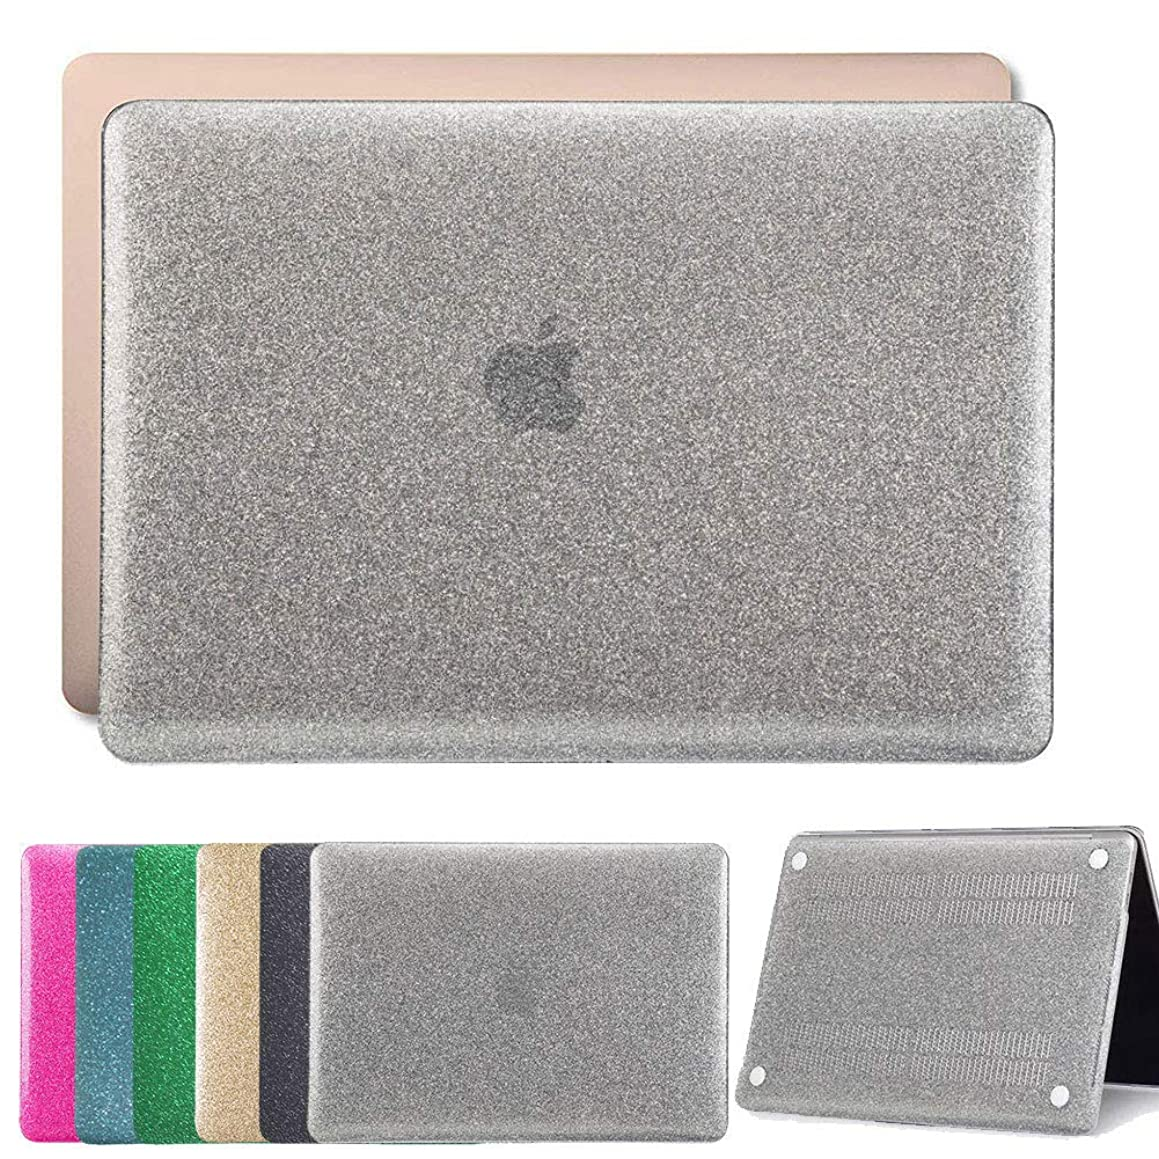 Bizcustom Bling Front Back Silvery Case for MacBook Air 11/11.6 No-Retina 2010-2015 A1465/A1370 Hard Crystal Sparkle Shiny Glitter See-Through Shell and Keyboard Cover